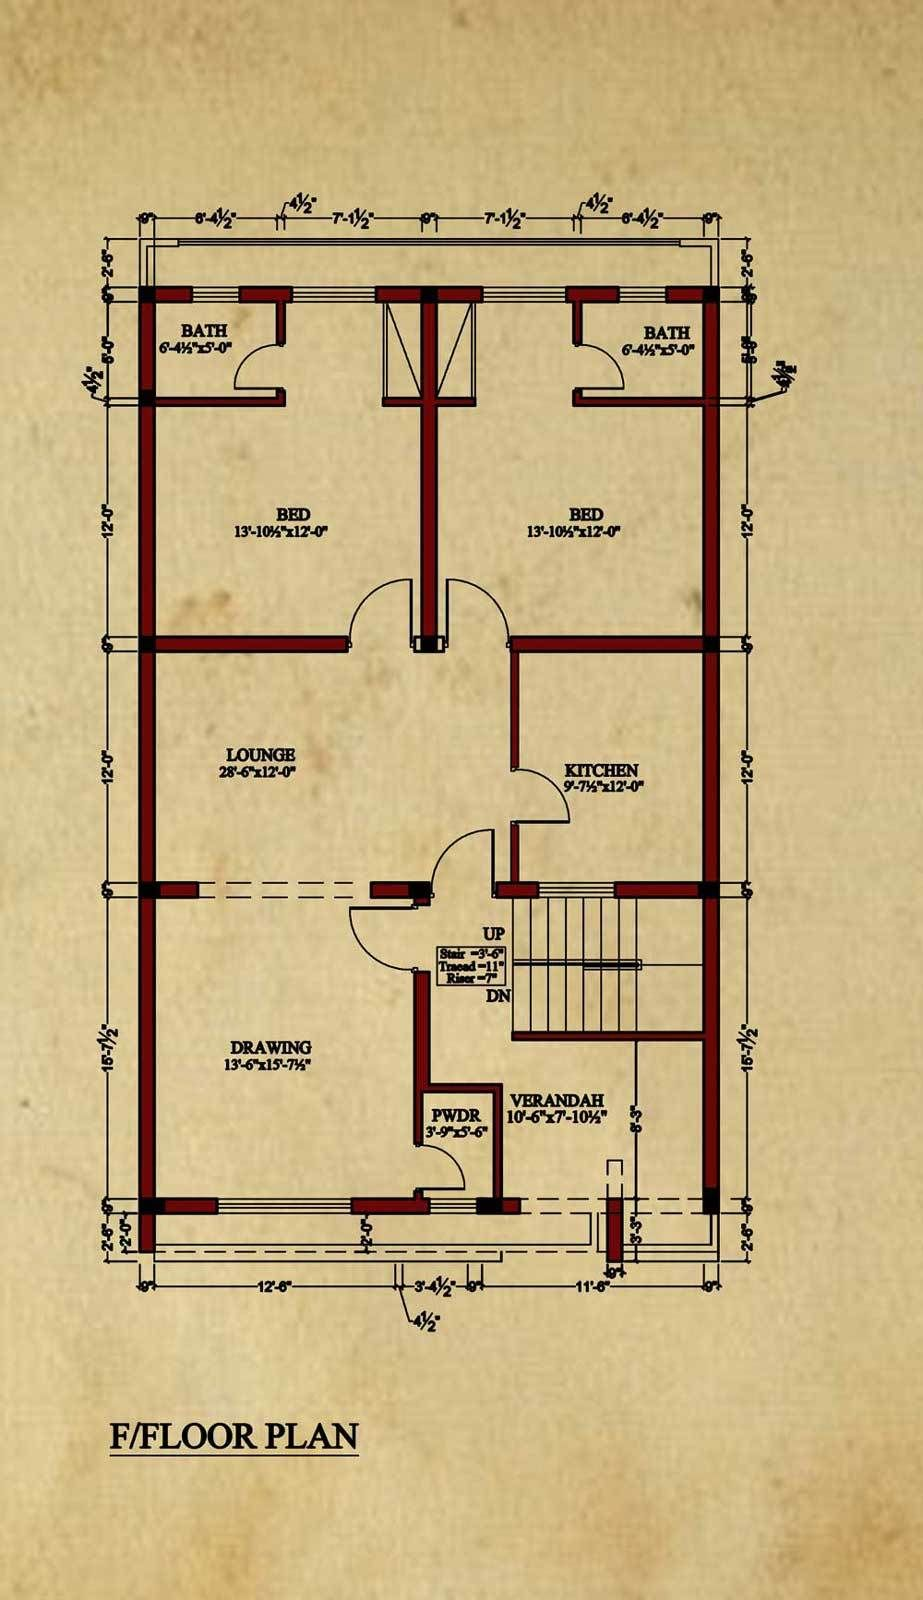 House Floor Plan By Image Concept 8 Marla House Plan Bungalow Floor Plans House Flooring House Floor Plans